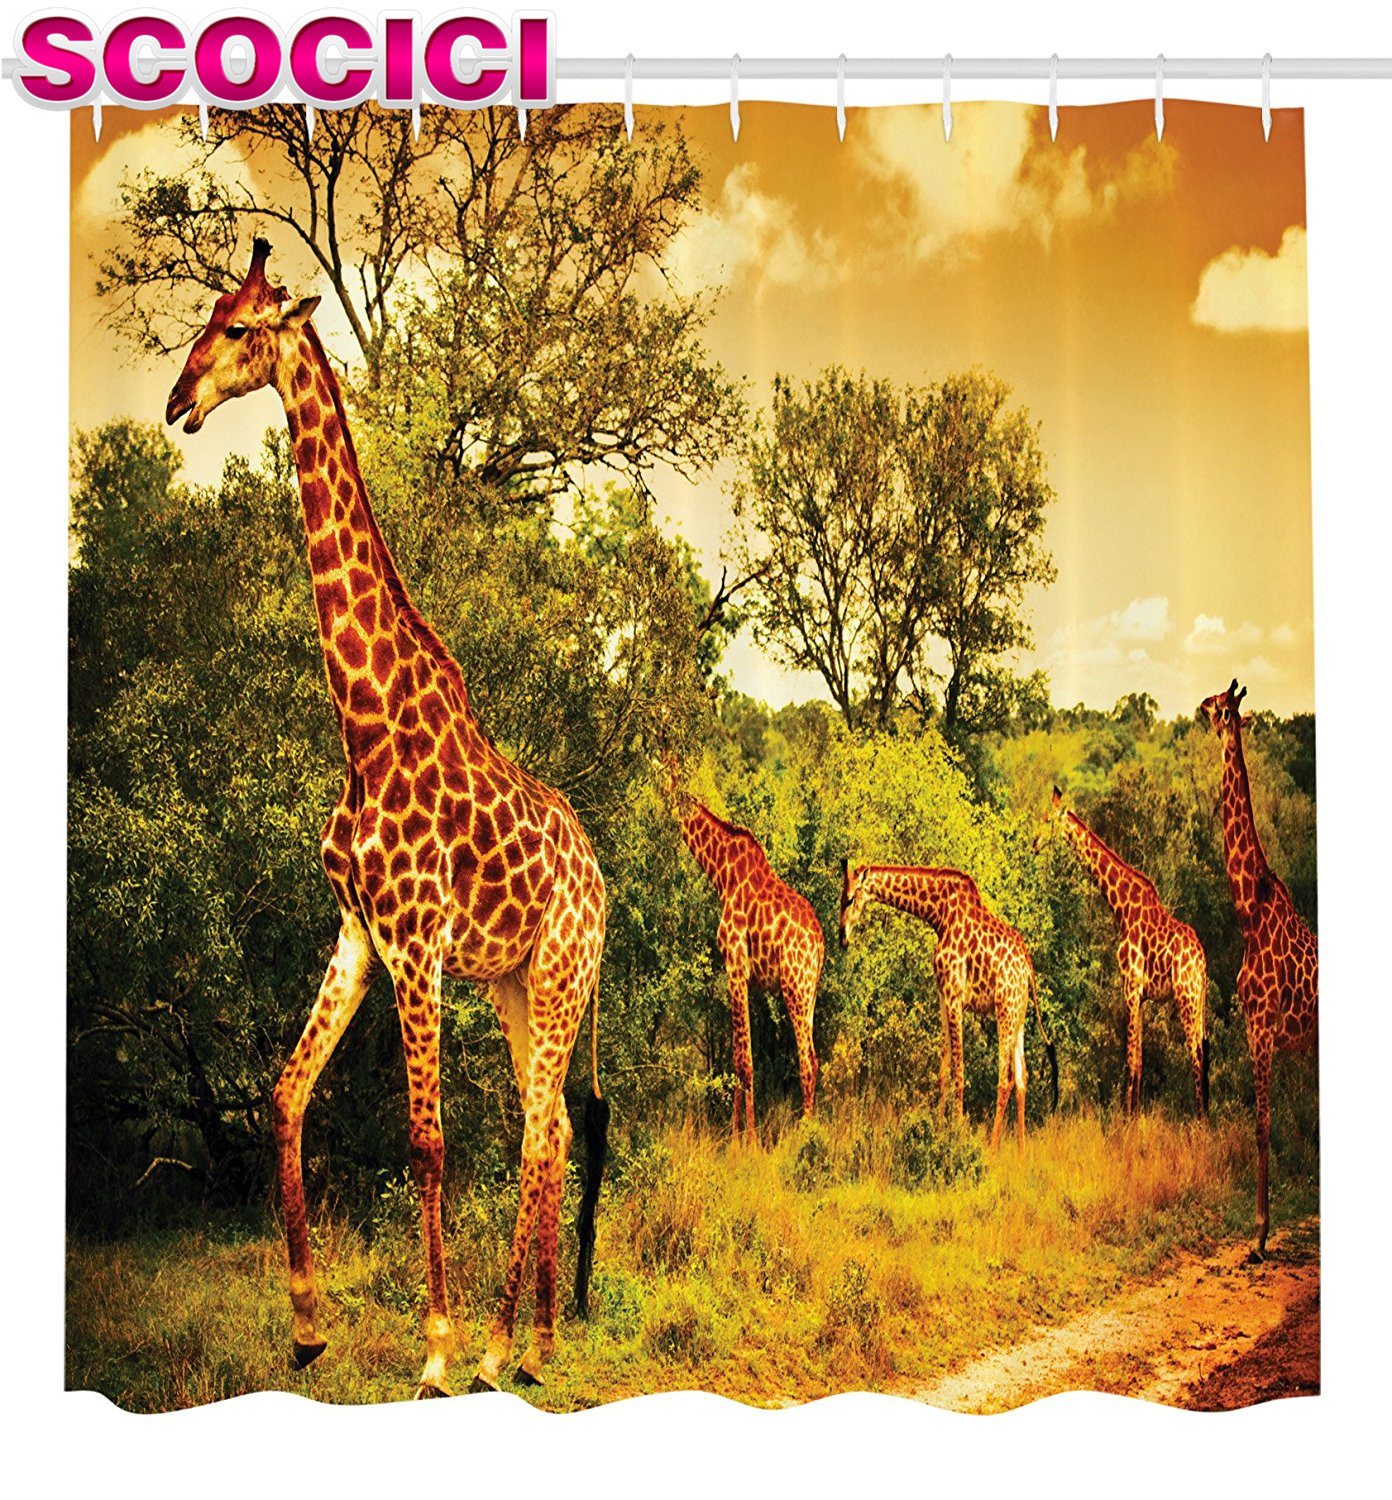 Safari bathroom decor for kids - Giraffe Shower Curtain Wildlife African Safari Decor Giraffe And Animals Art For Bathroom Decorations Kids Teens Wild Jungle Des